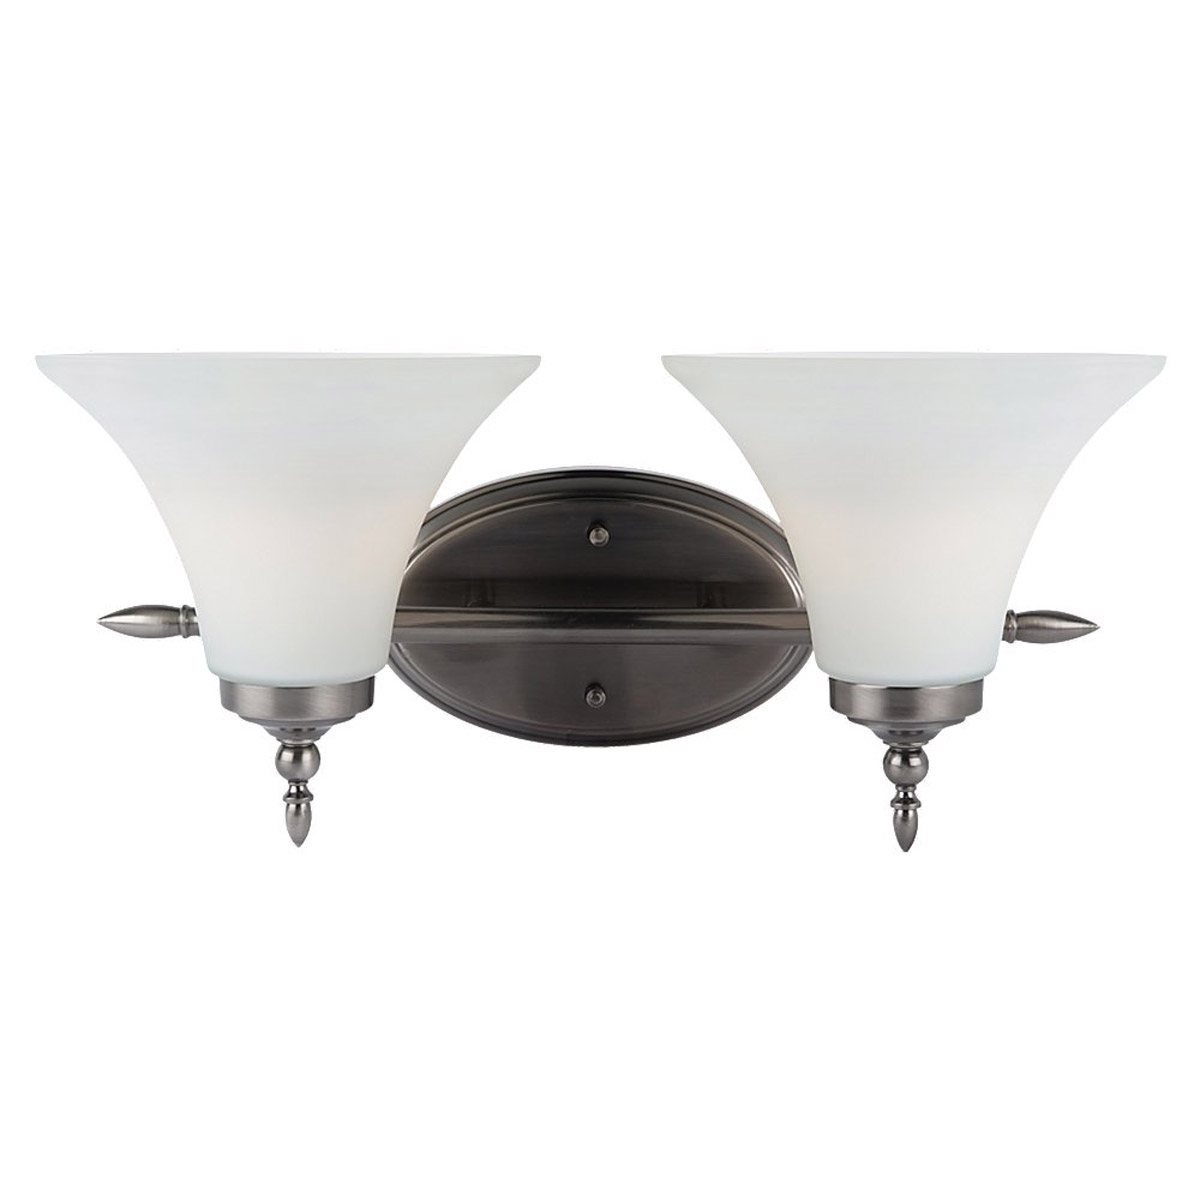 Sea Gull Lighting Montreal 2 Light Bath Vanity in Antique Brushed Nickel 41181BLE-965 photo